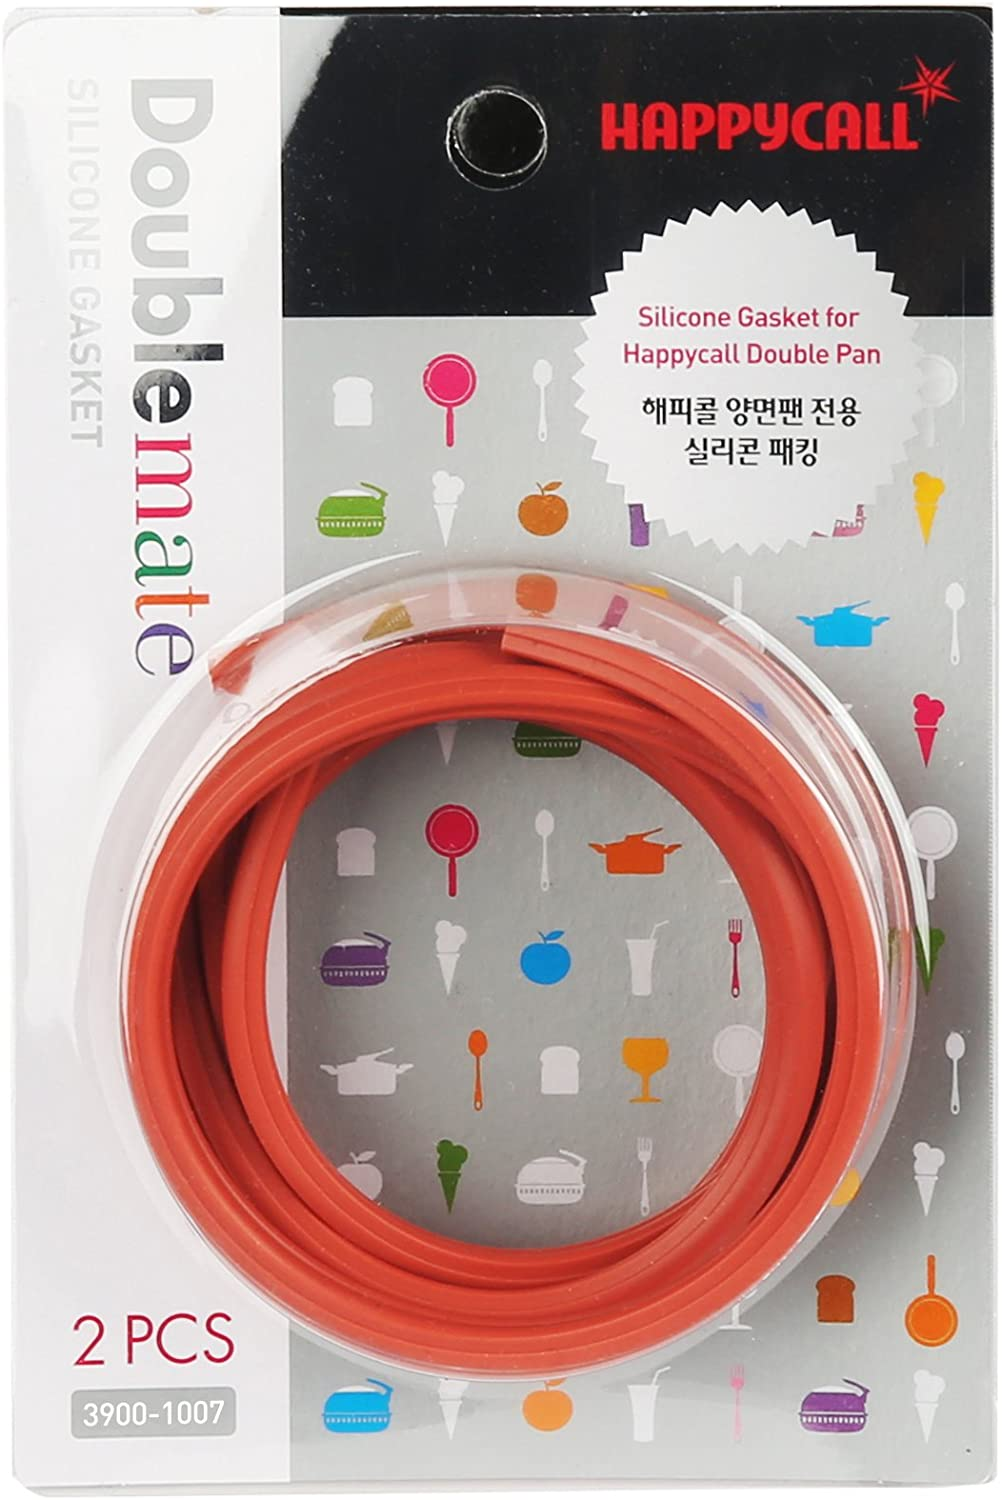 Happycall Double Pan Silicone Gasket Standard Red